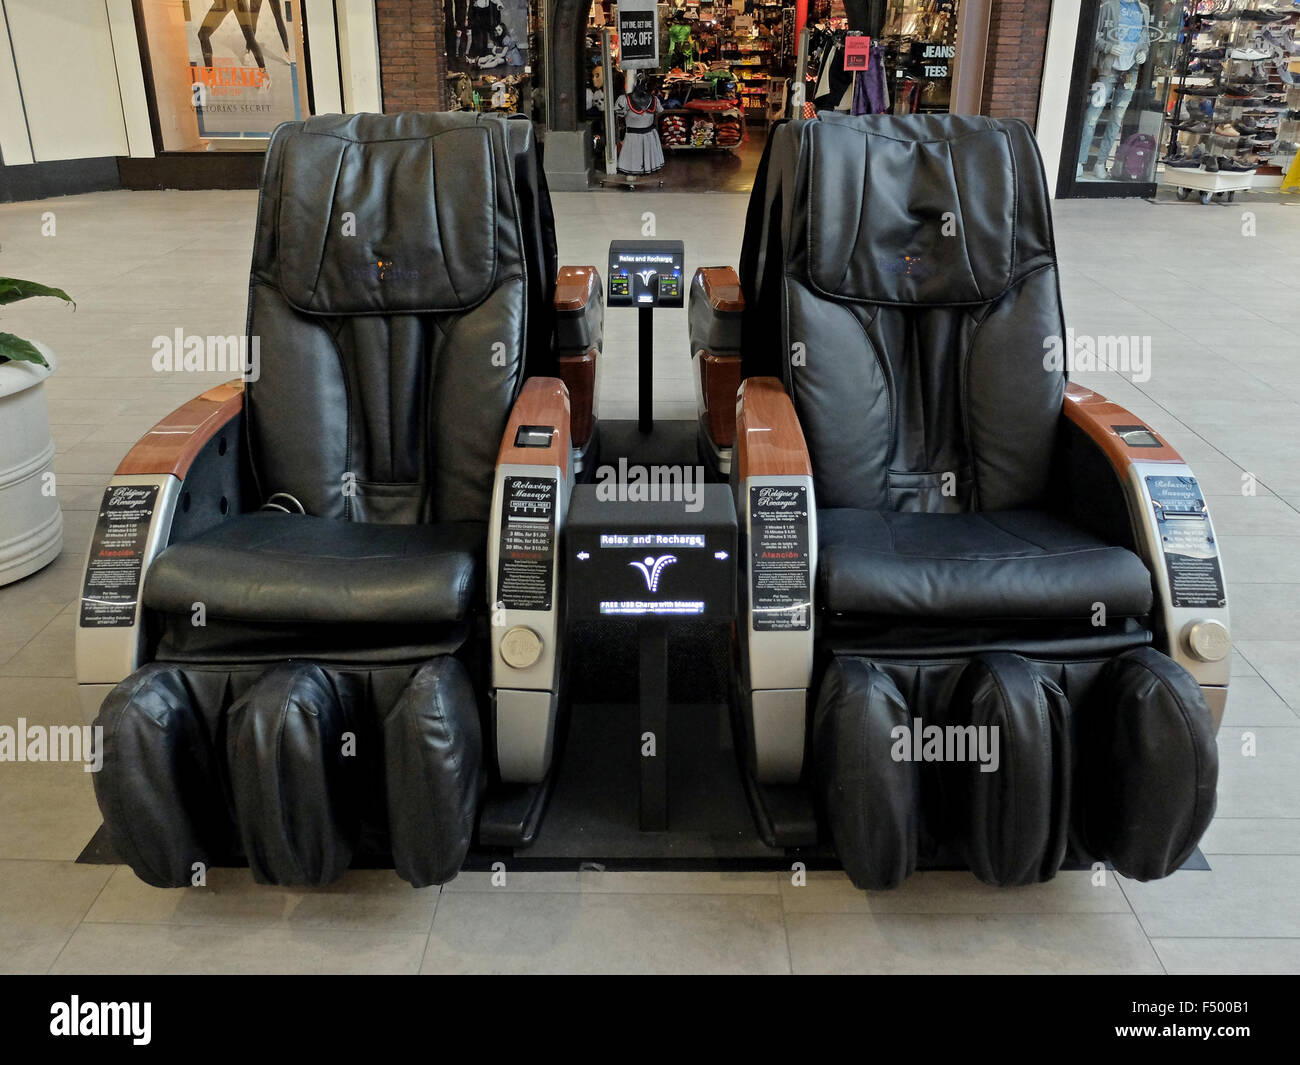 Japanische Massagesessel Such As Massage Chairs Stockfotos Such As Massage Chairs Bilder